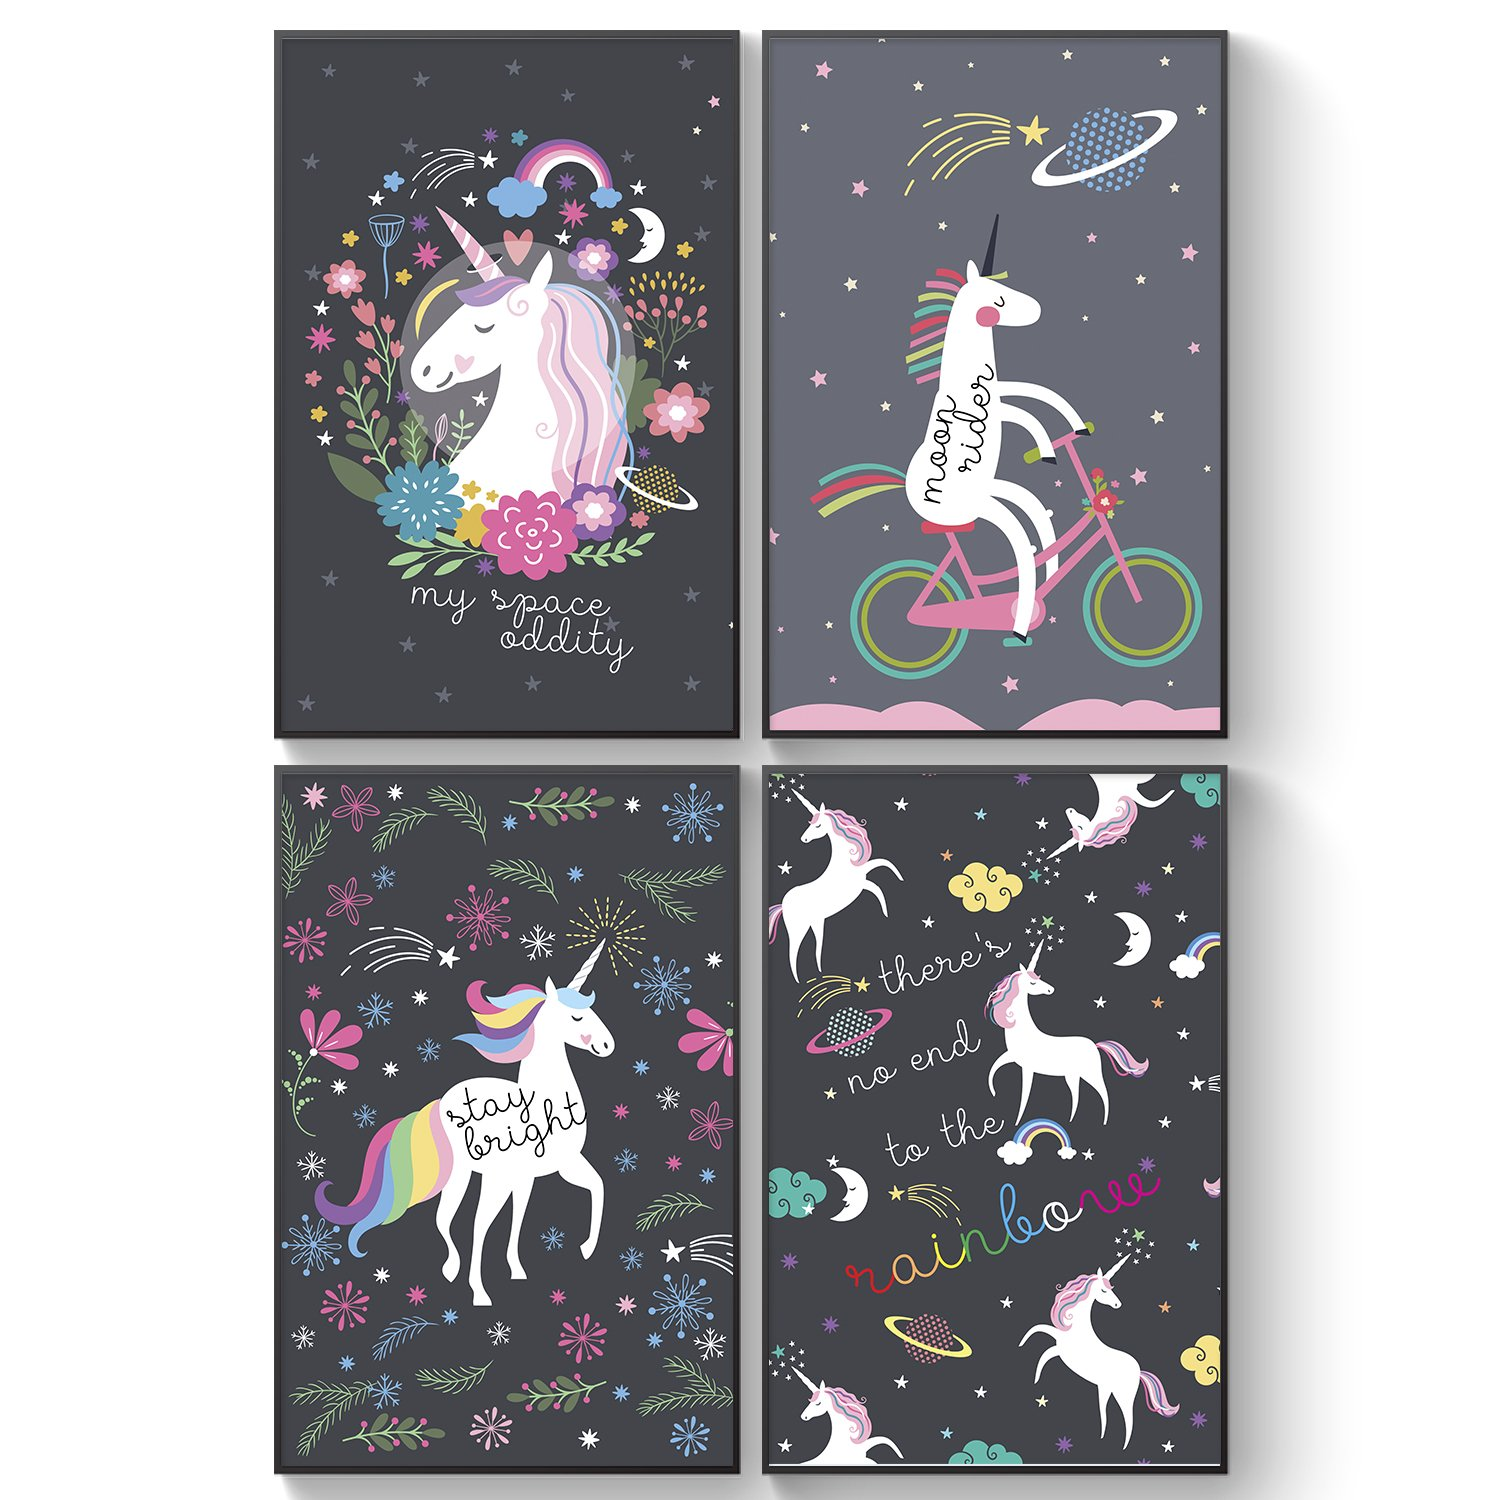 Pillow Toast Galaxy Unicorns Posters 4 Set For Girls Space Bedroom Decor Cosmic Unicorn Wall Art A3 Size Hanging Buy Online In Bahamas At Bahamas Desertcart Com Productid 91455508